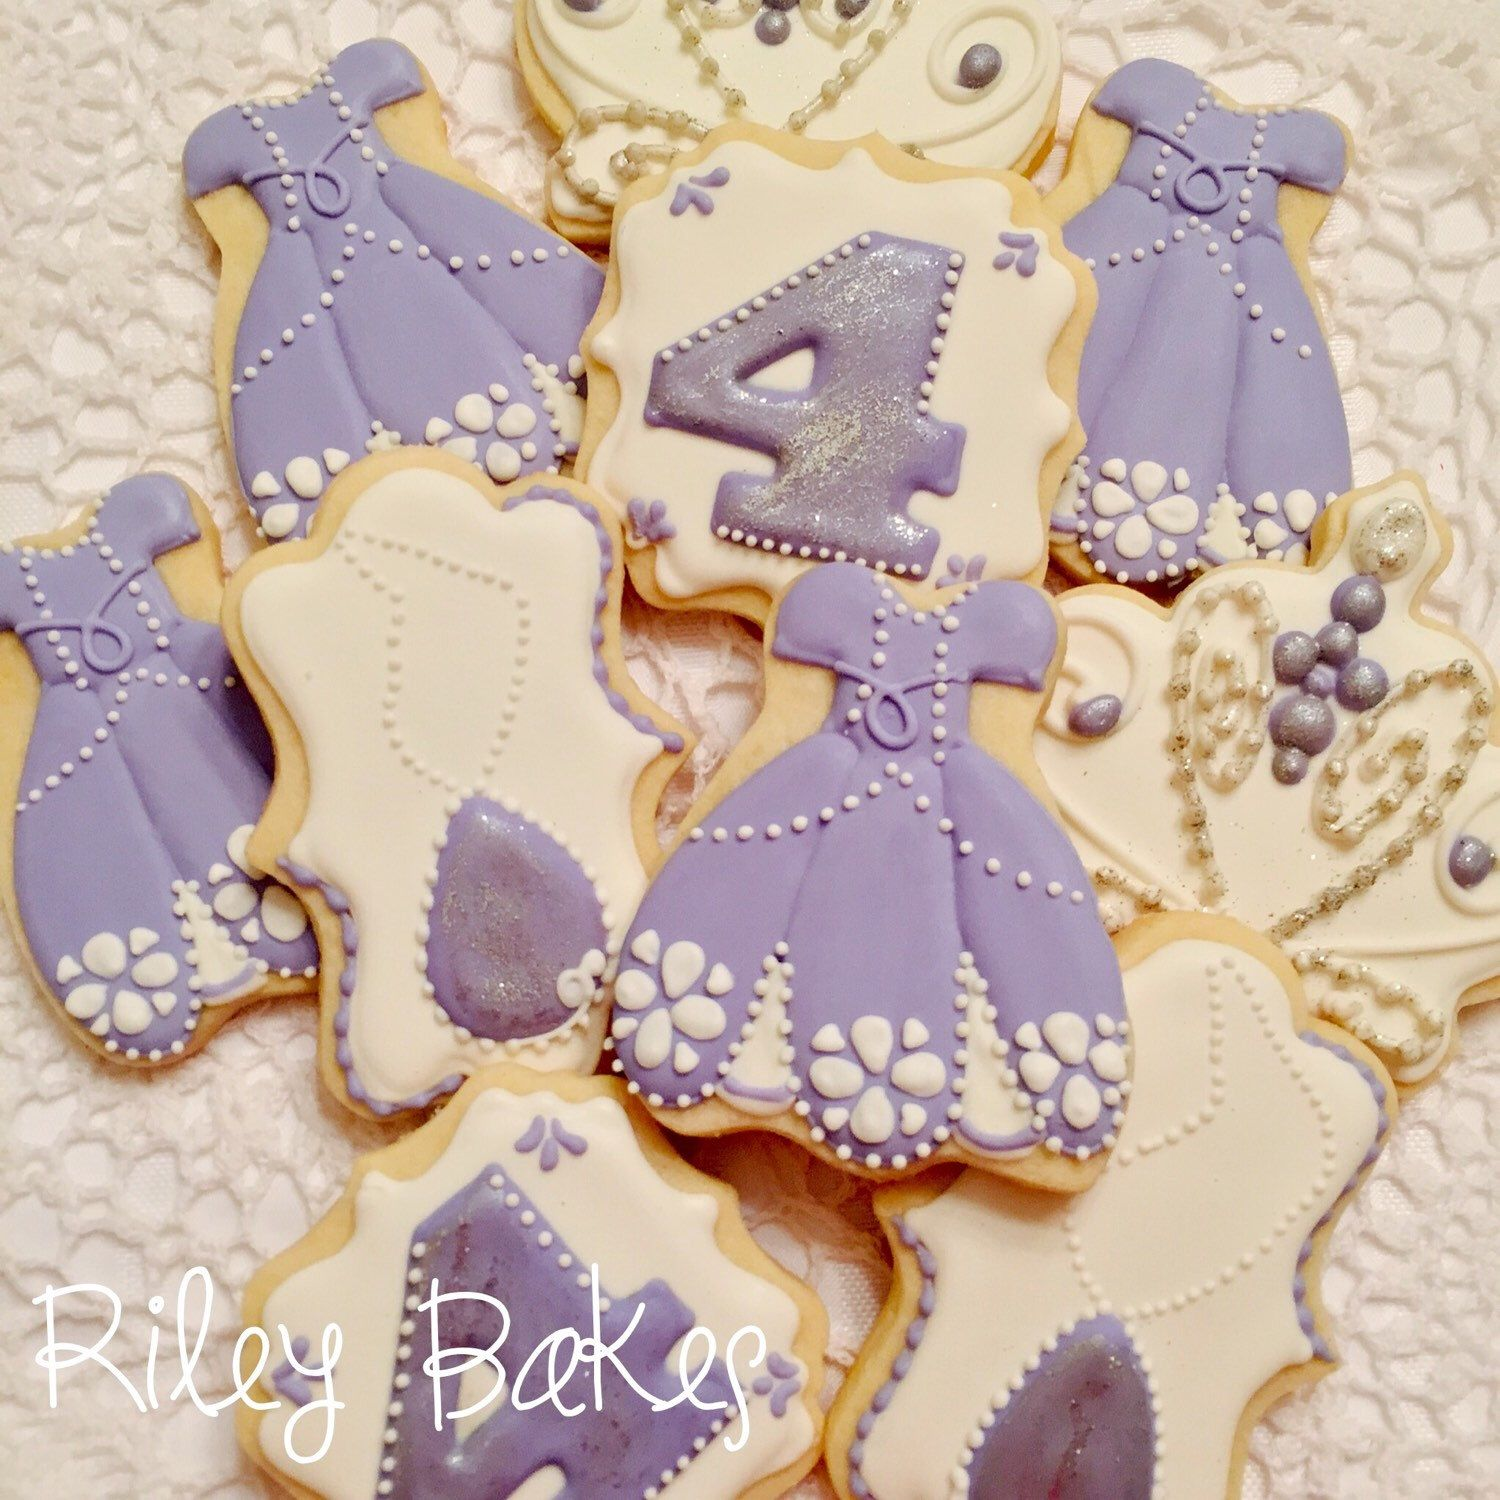 Pin By Abby Onkst On Nora S 5th Birthday: Pin By Riley Bakes On Riley Bakes